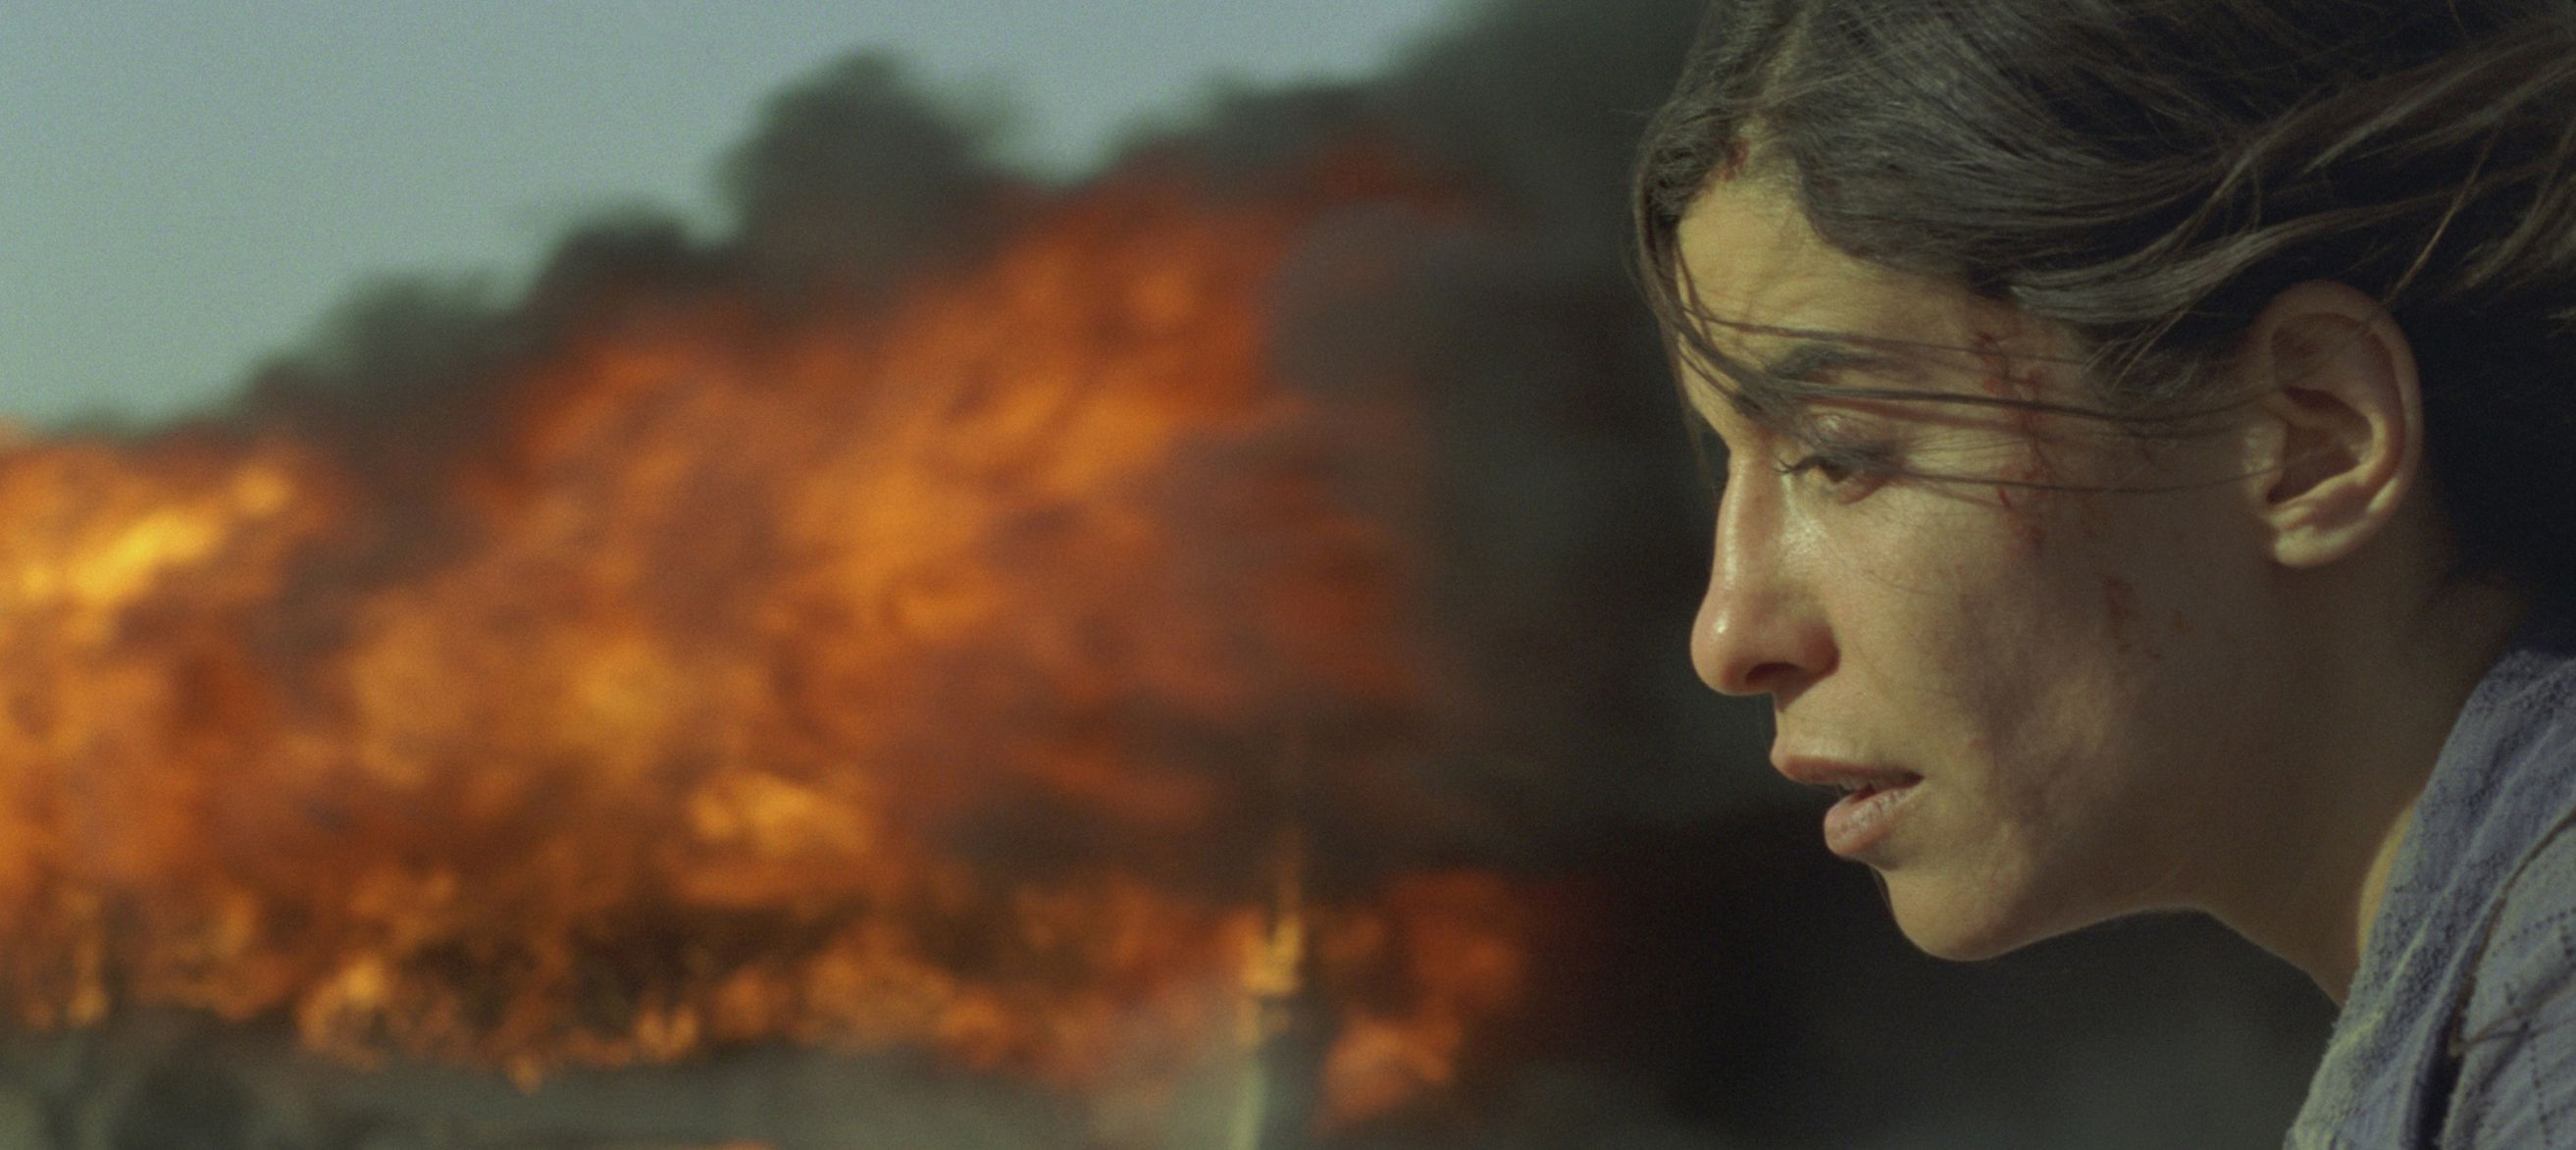 An image from Incendies